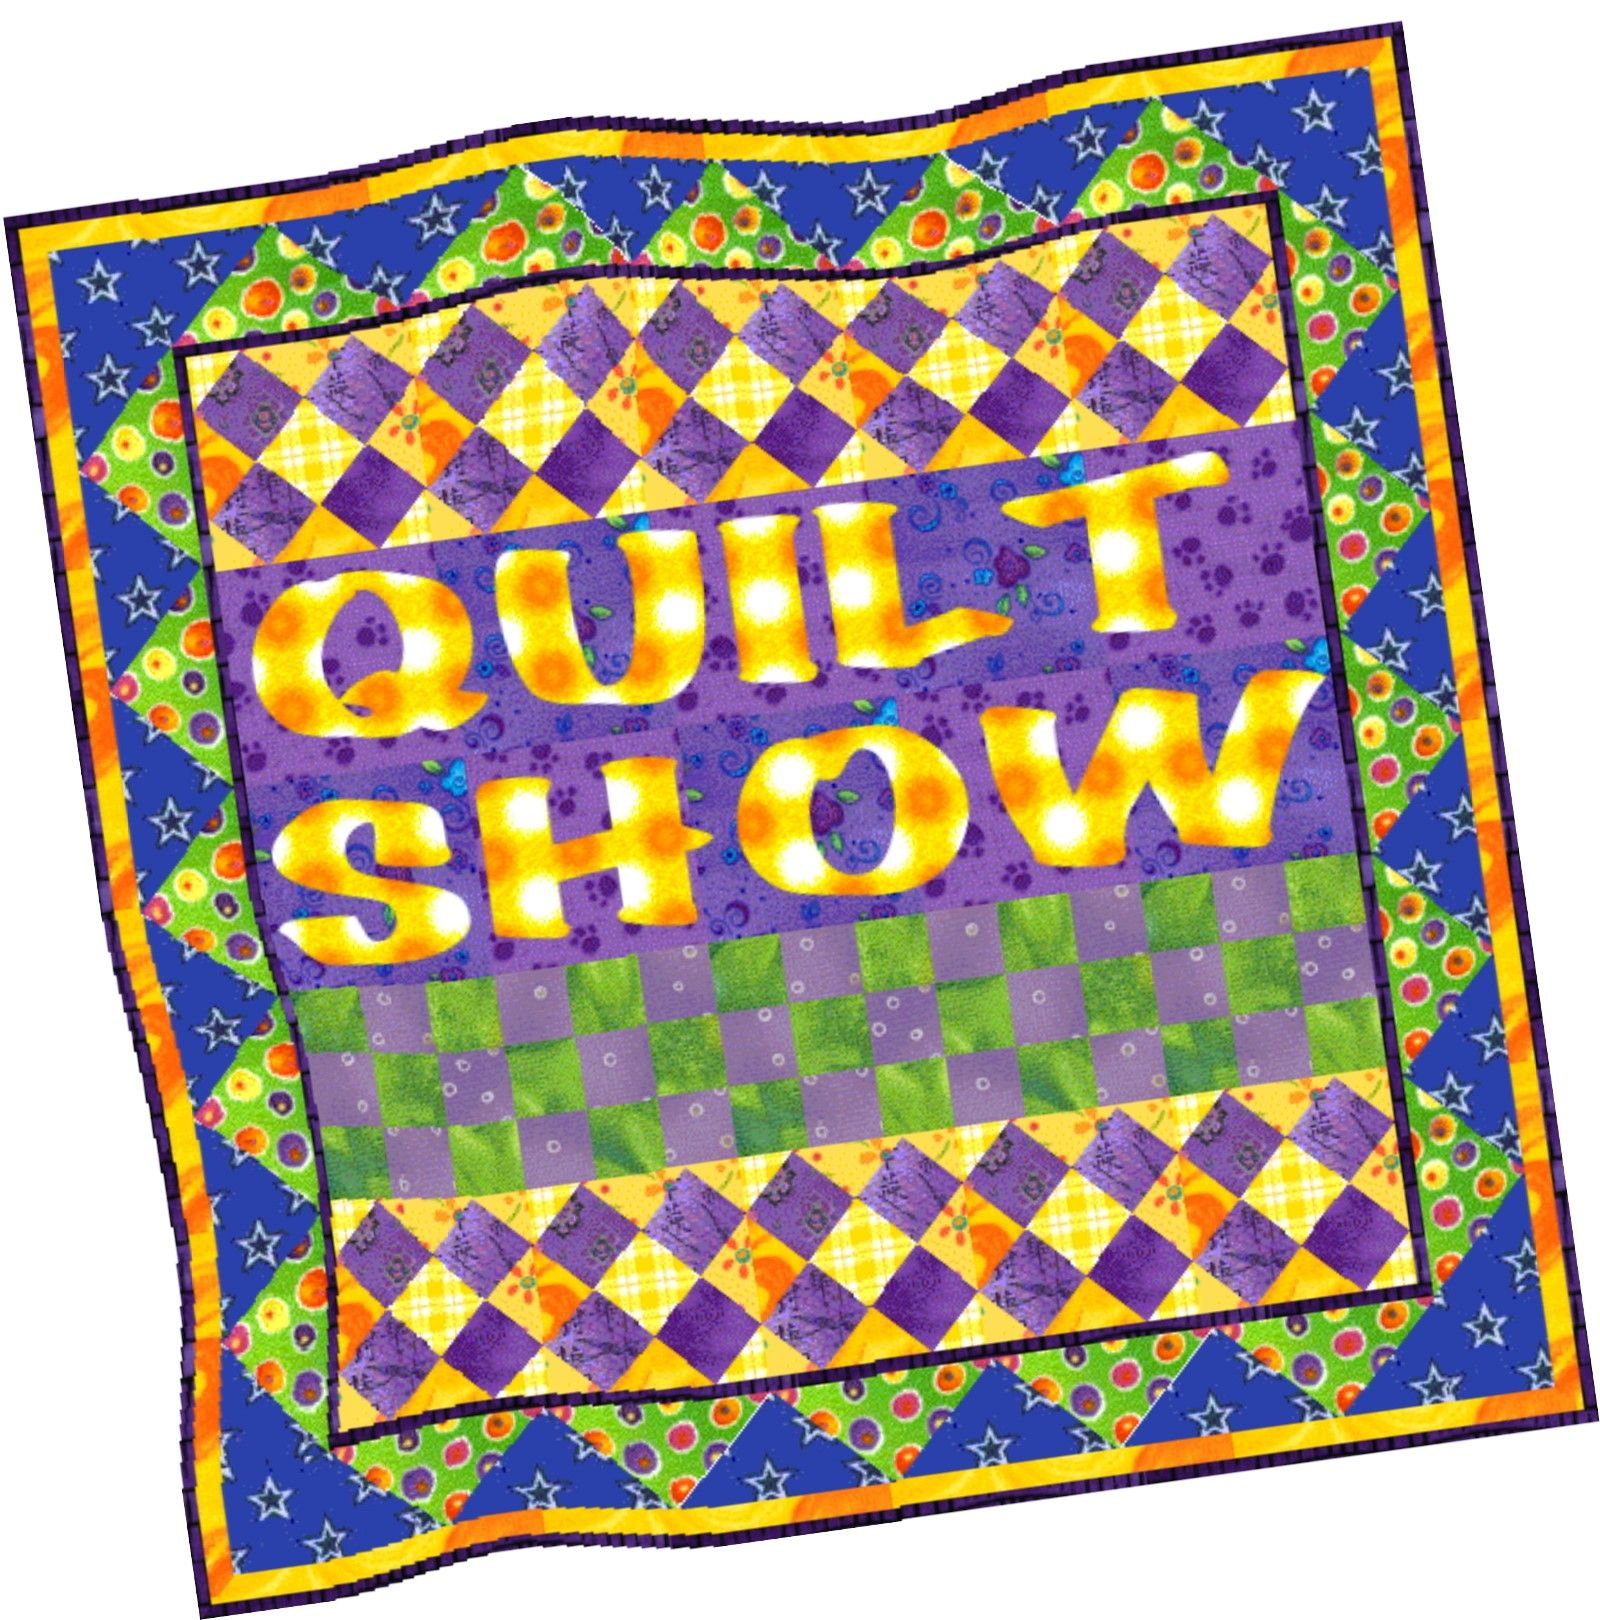 Free quilting clip art. Quilt clipart